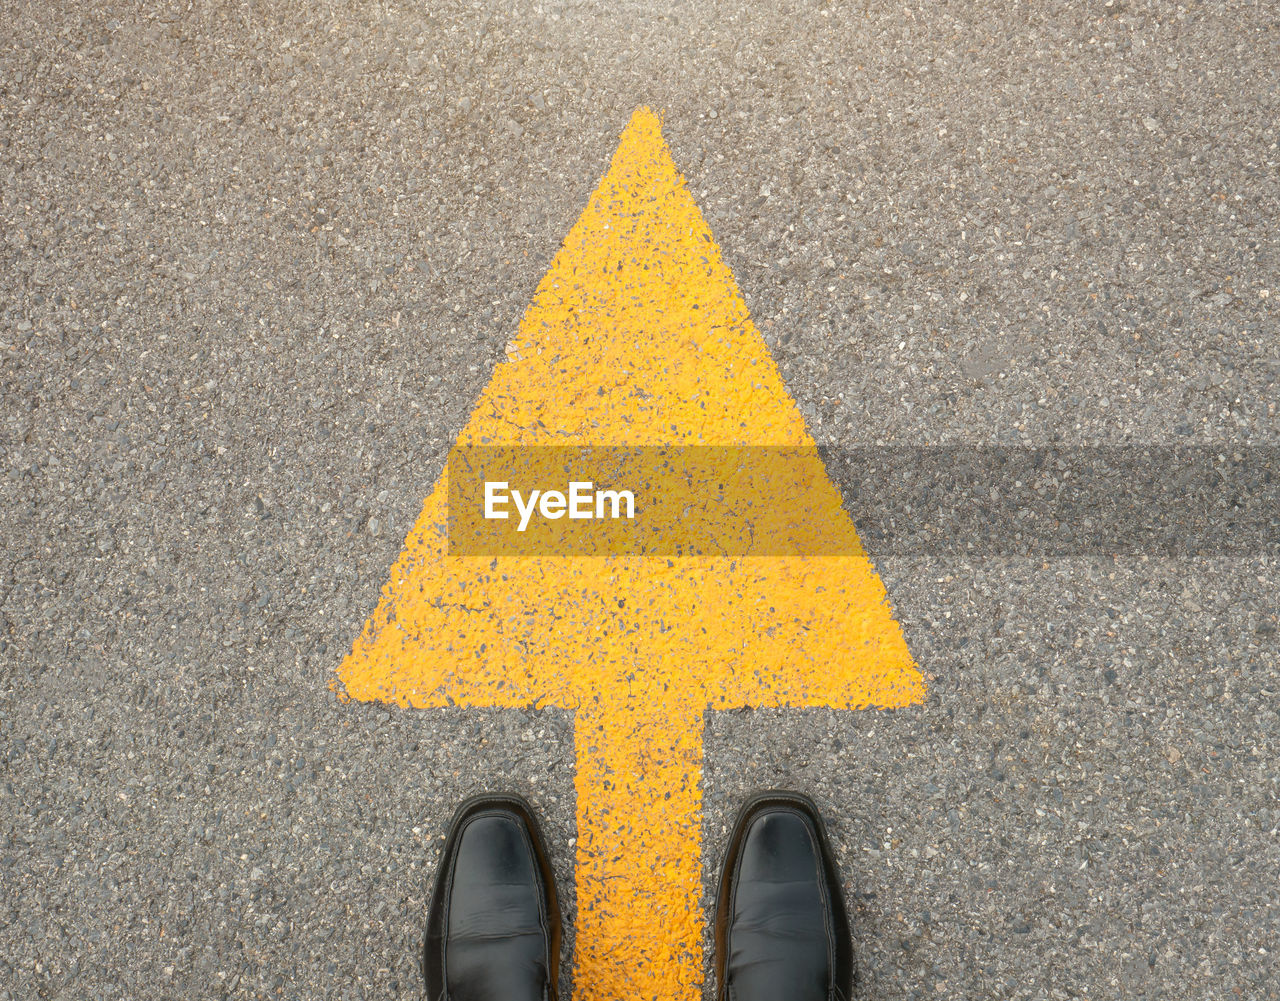 yellow, low section, shoe, standing, arrow symbol, sign, human body part, human leg, one person, body part, road, symbol, transportation, high angle view, direction, real people, guidance, day, personal perspective, outdoors, human foot, human limb